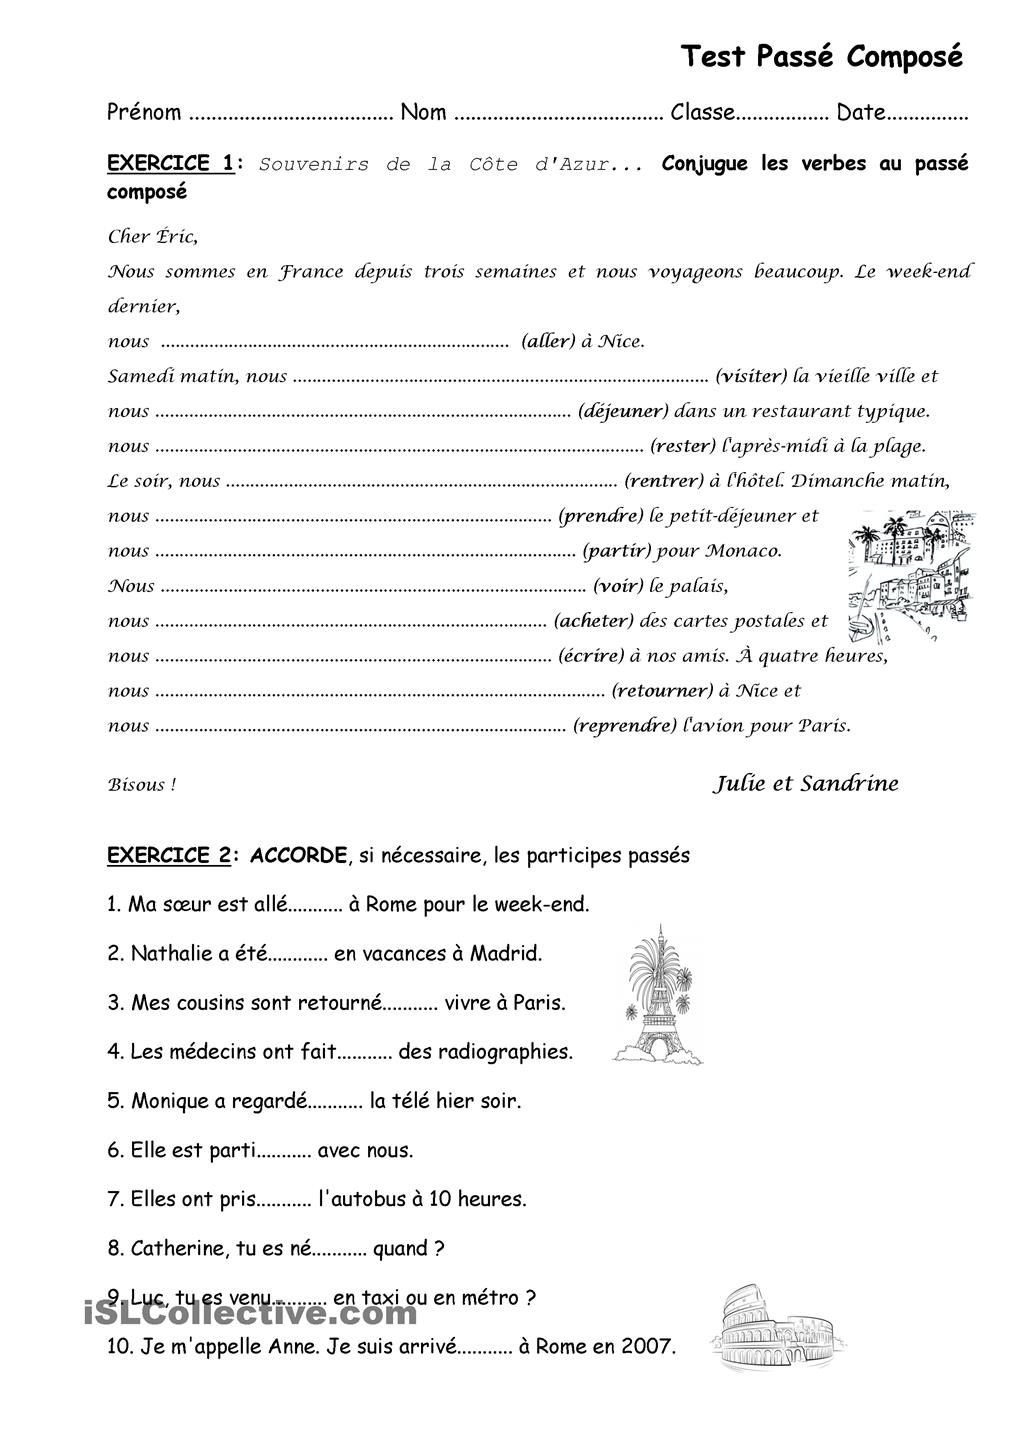 worksheet Passe Compose Worksheets Printable avec avoir et french pinterest explore worksheets student centered resources and more